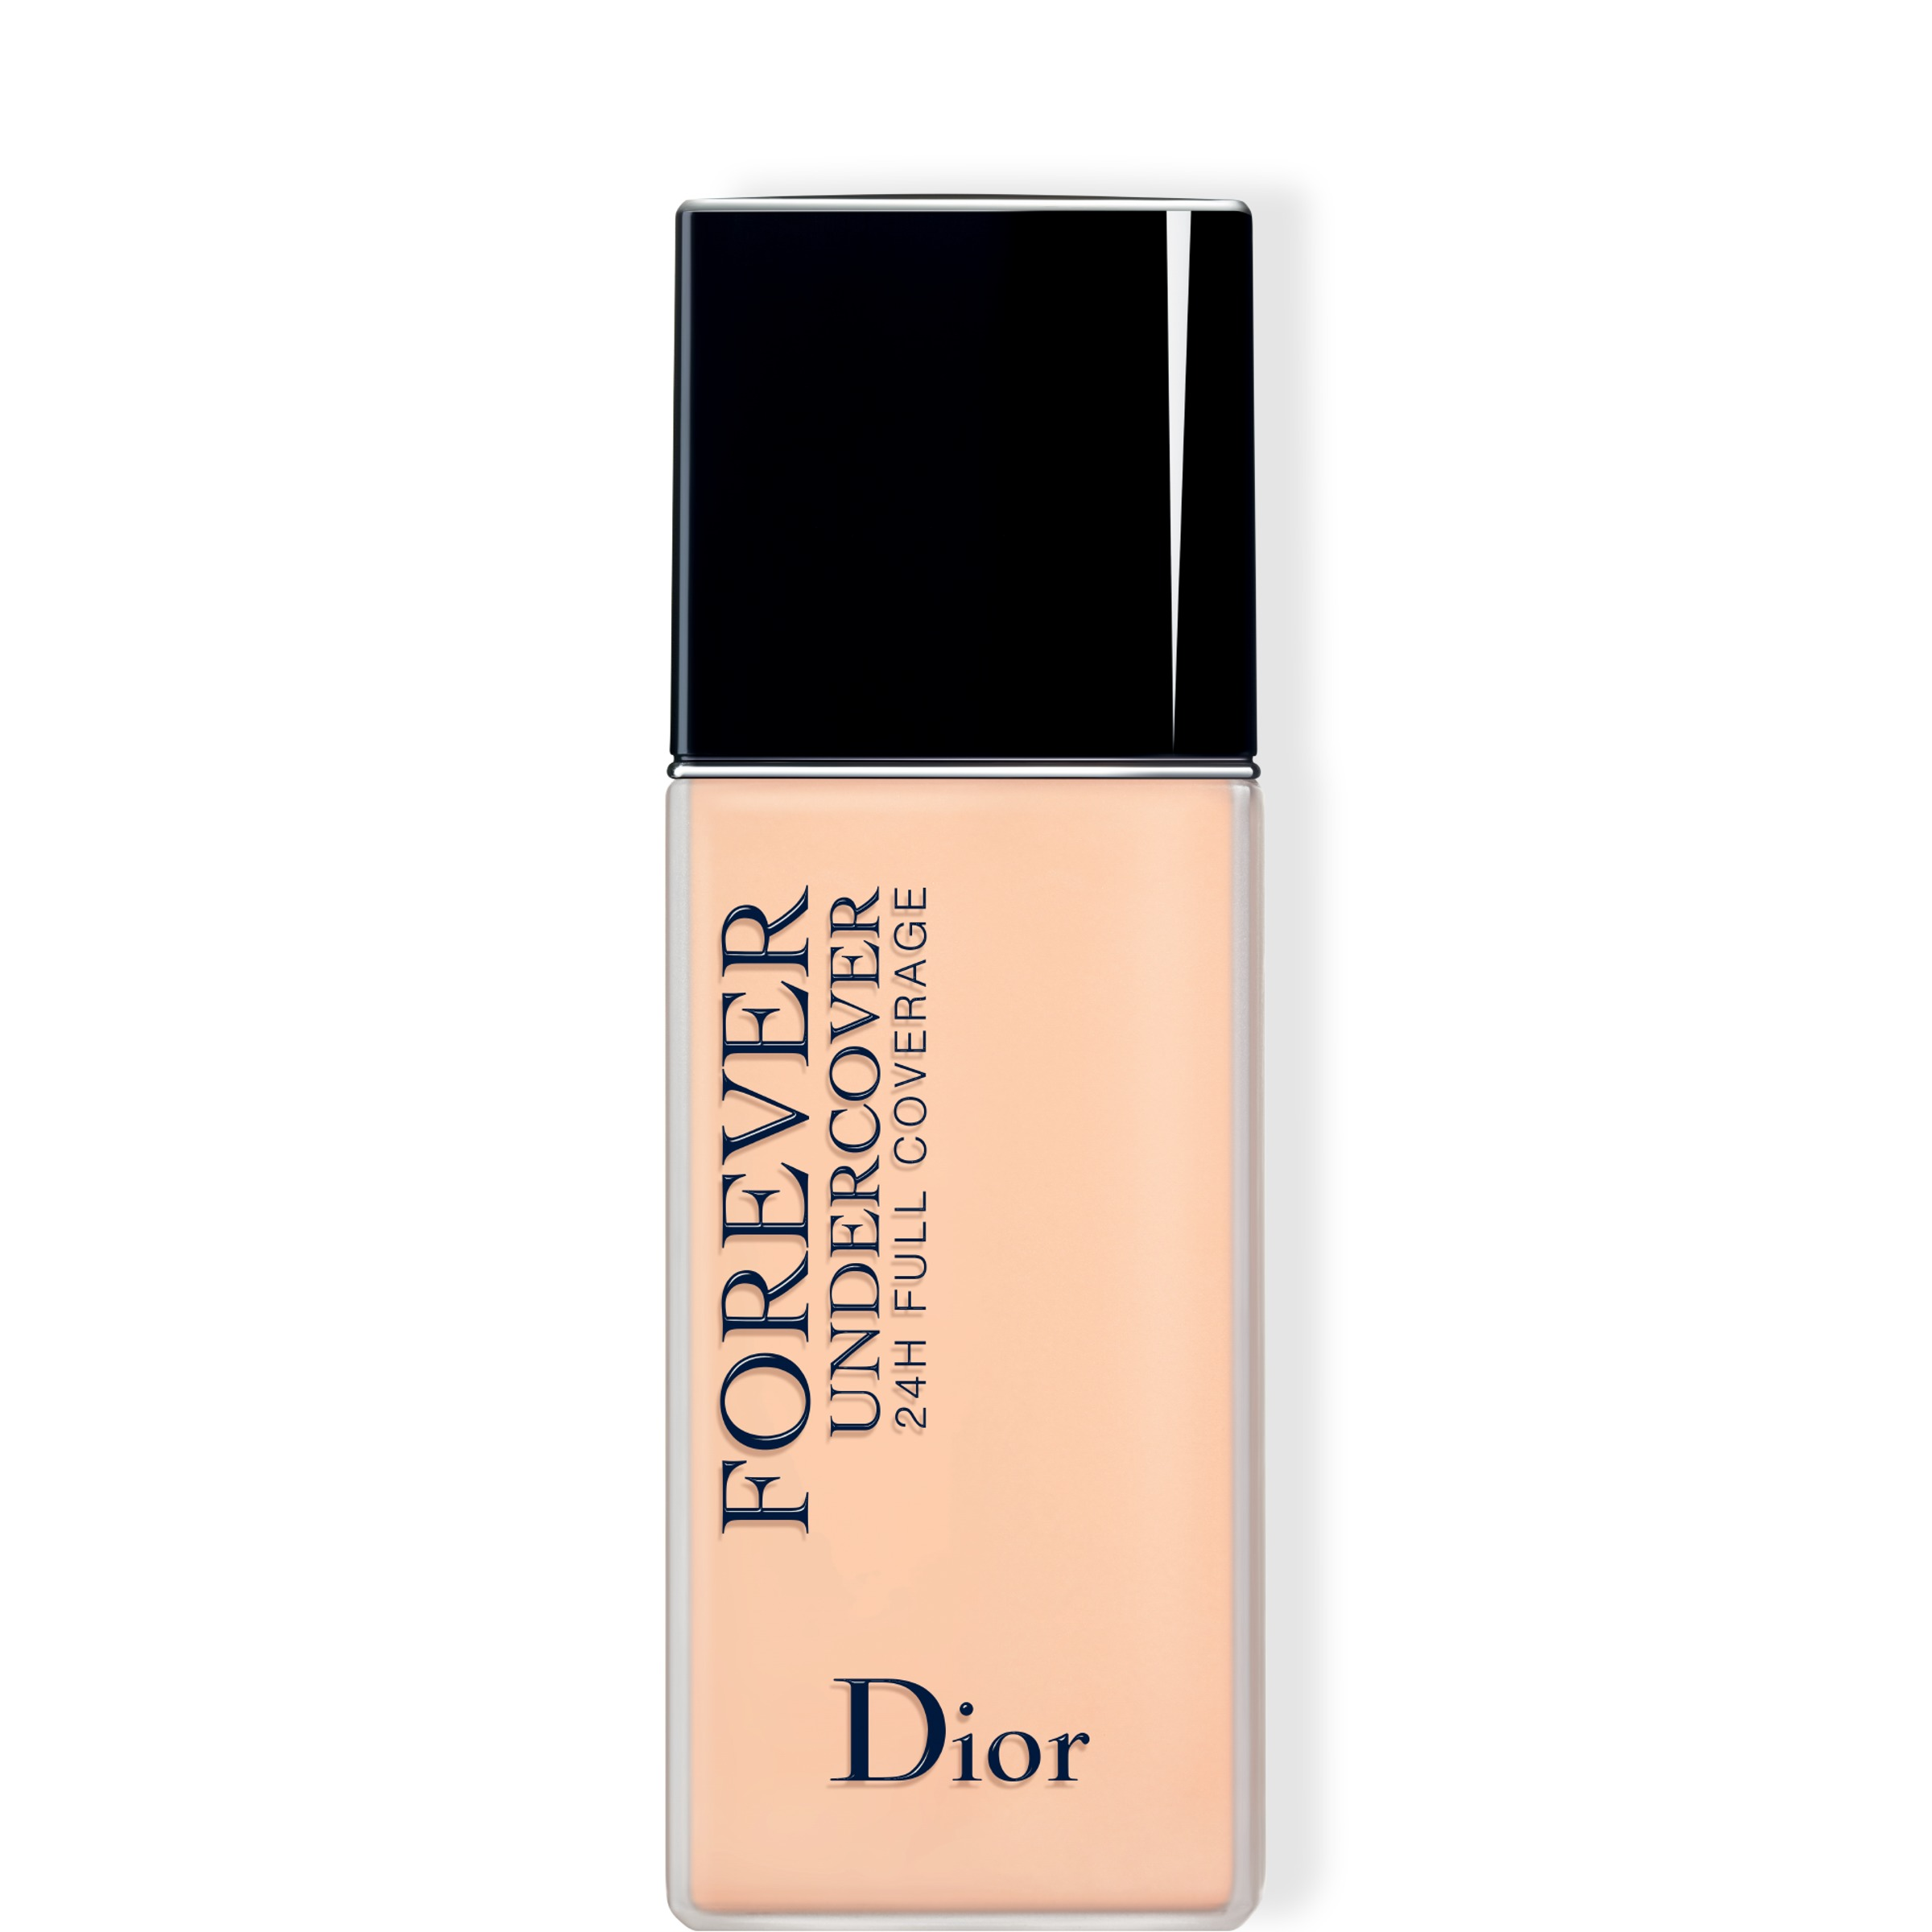 Diorskin Forever Undercover Foundation 20 Light Beige